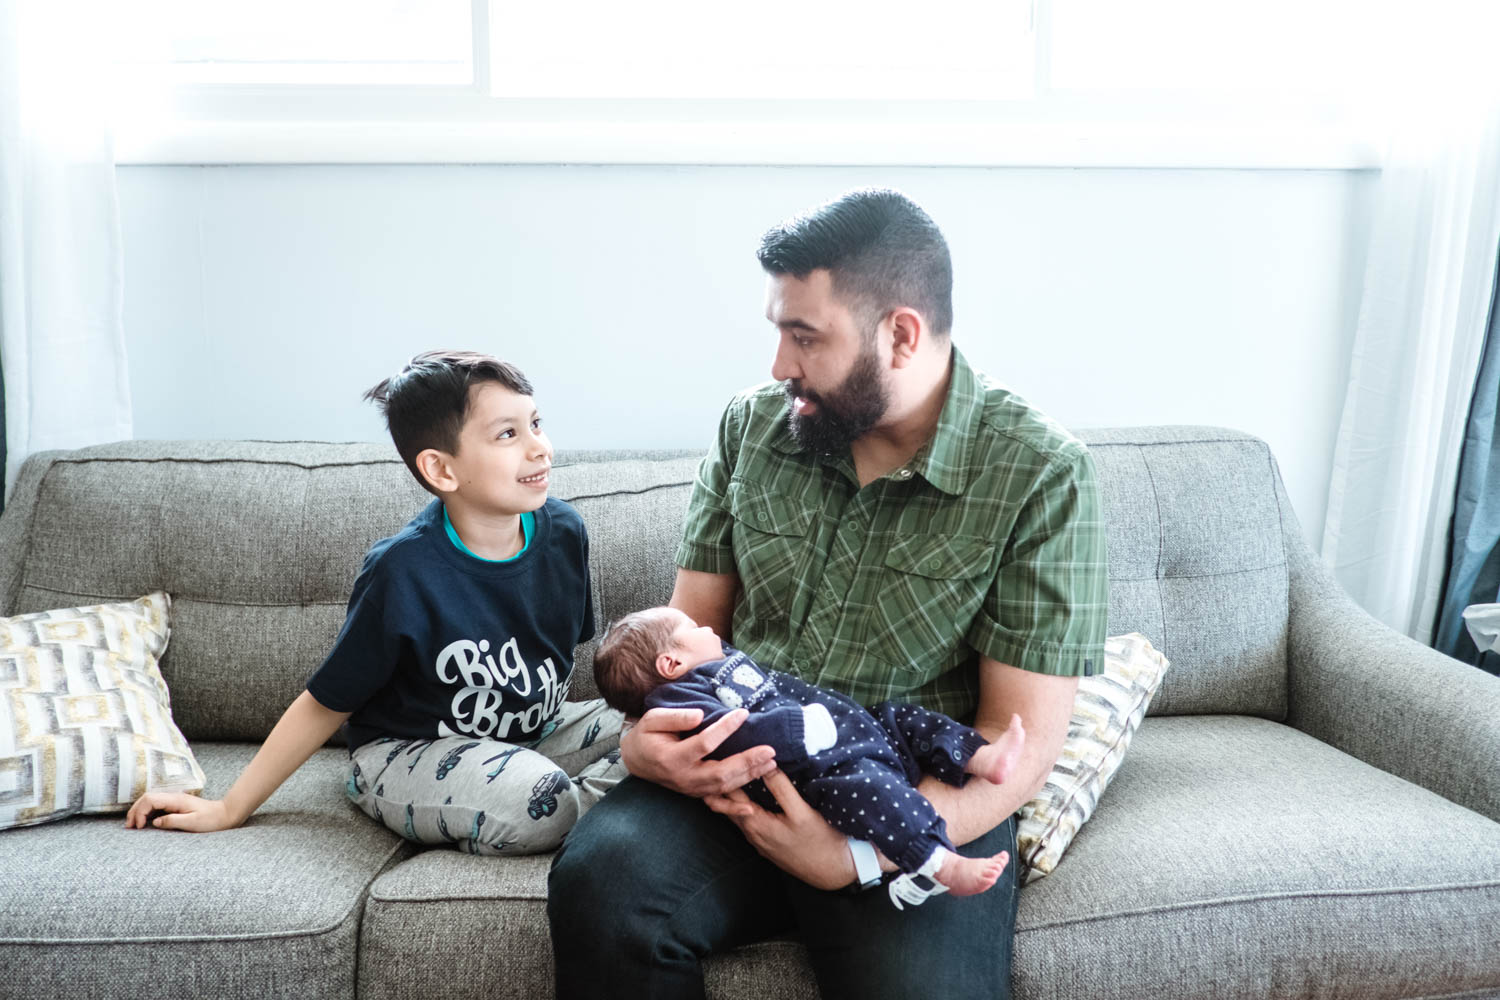 boy-meets-his-baby-brother-for-the-first-time-chicago25.jpg